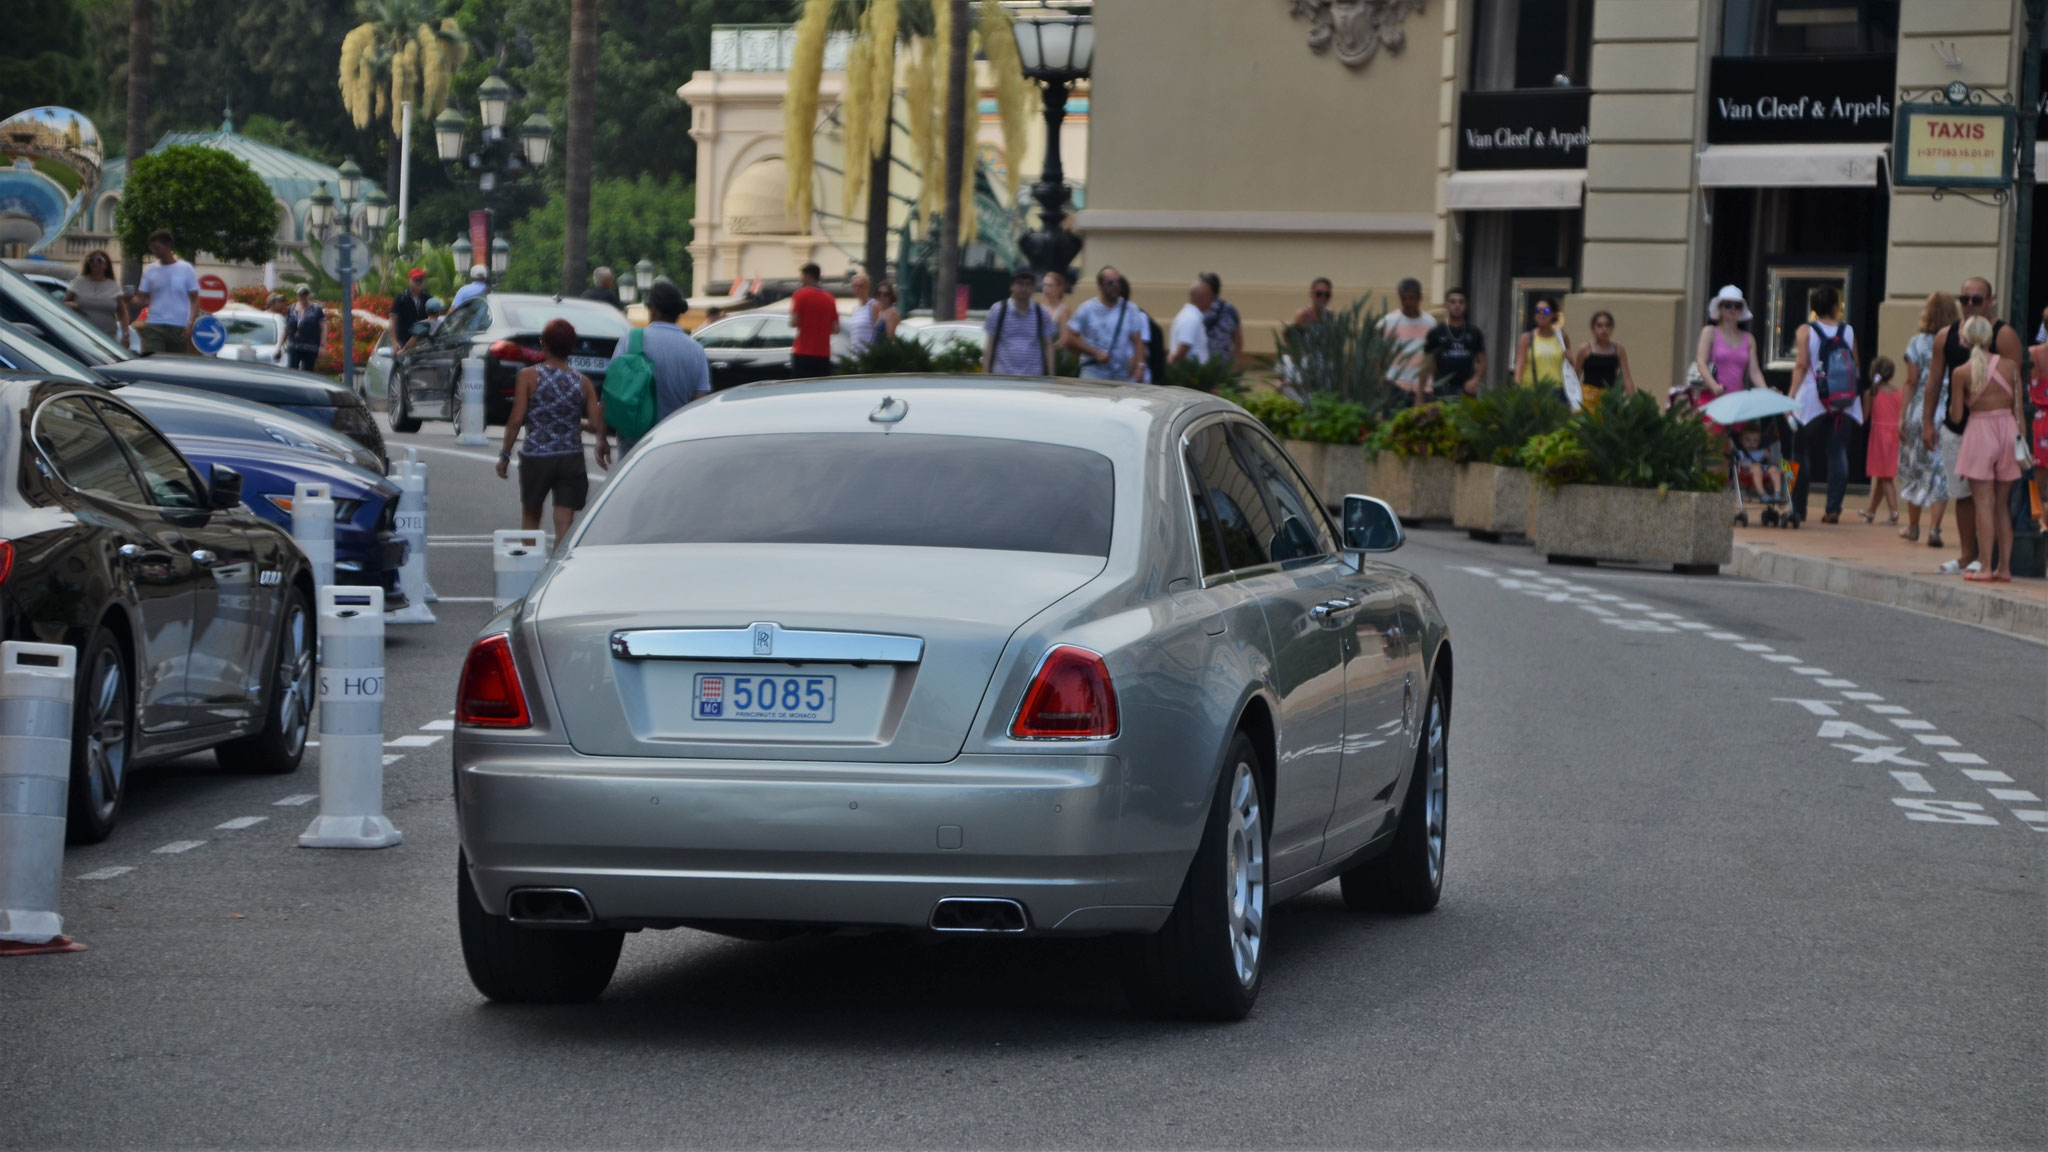 Rolls Royce Ghost - 5085 (MC)